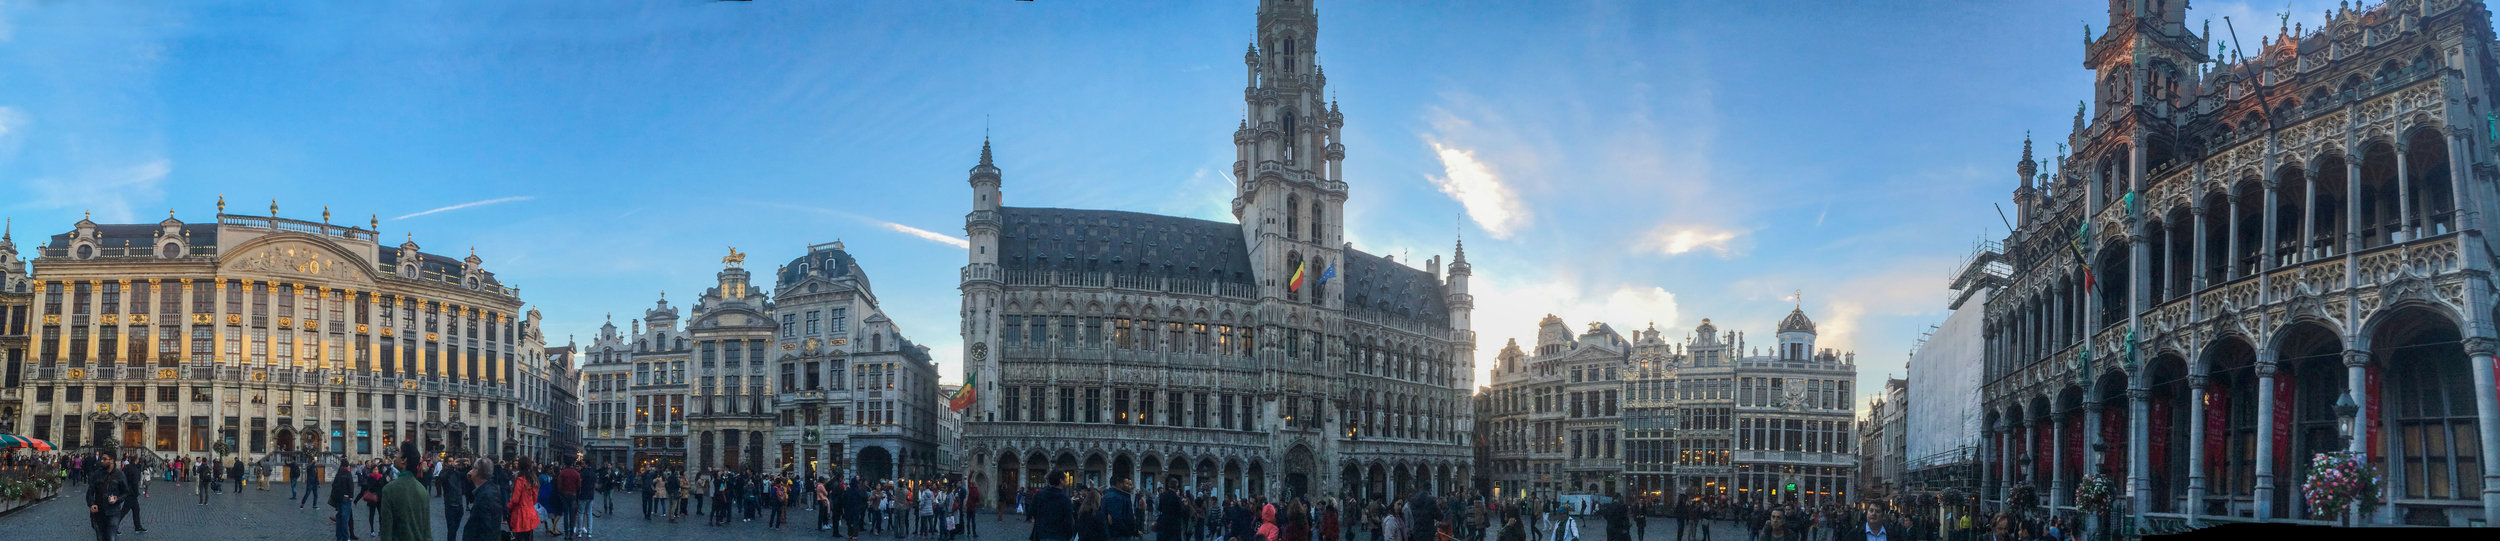 Grote Markt or the Central square of Brussels